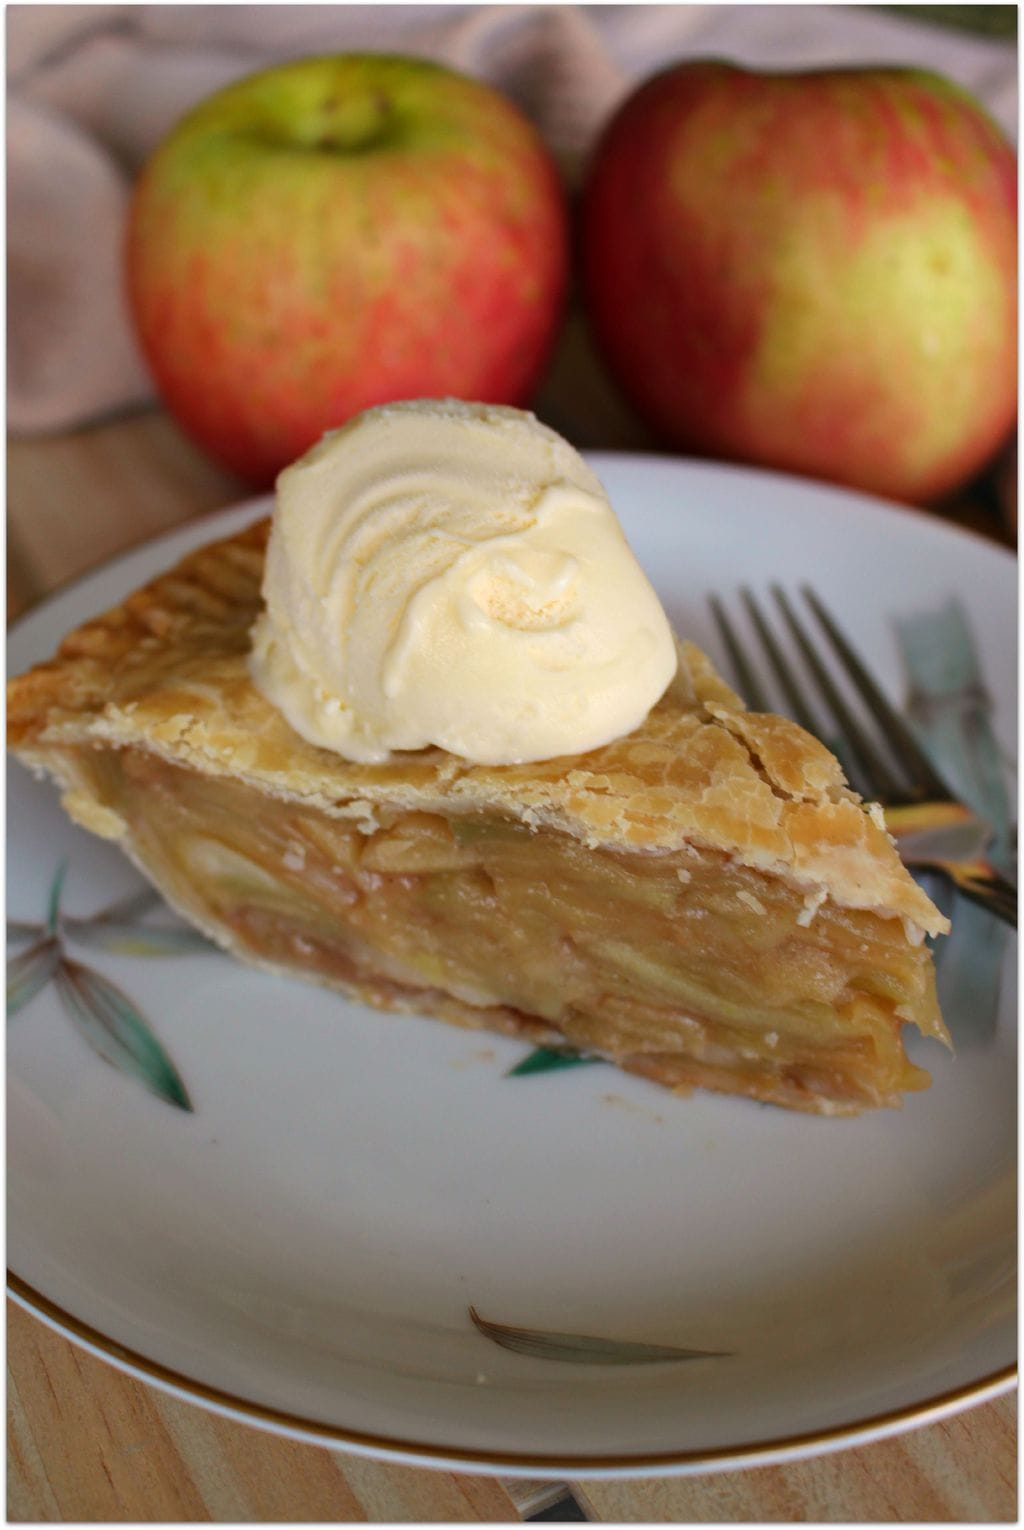 Delicious homemade pie recipes for any time of year!